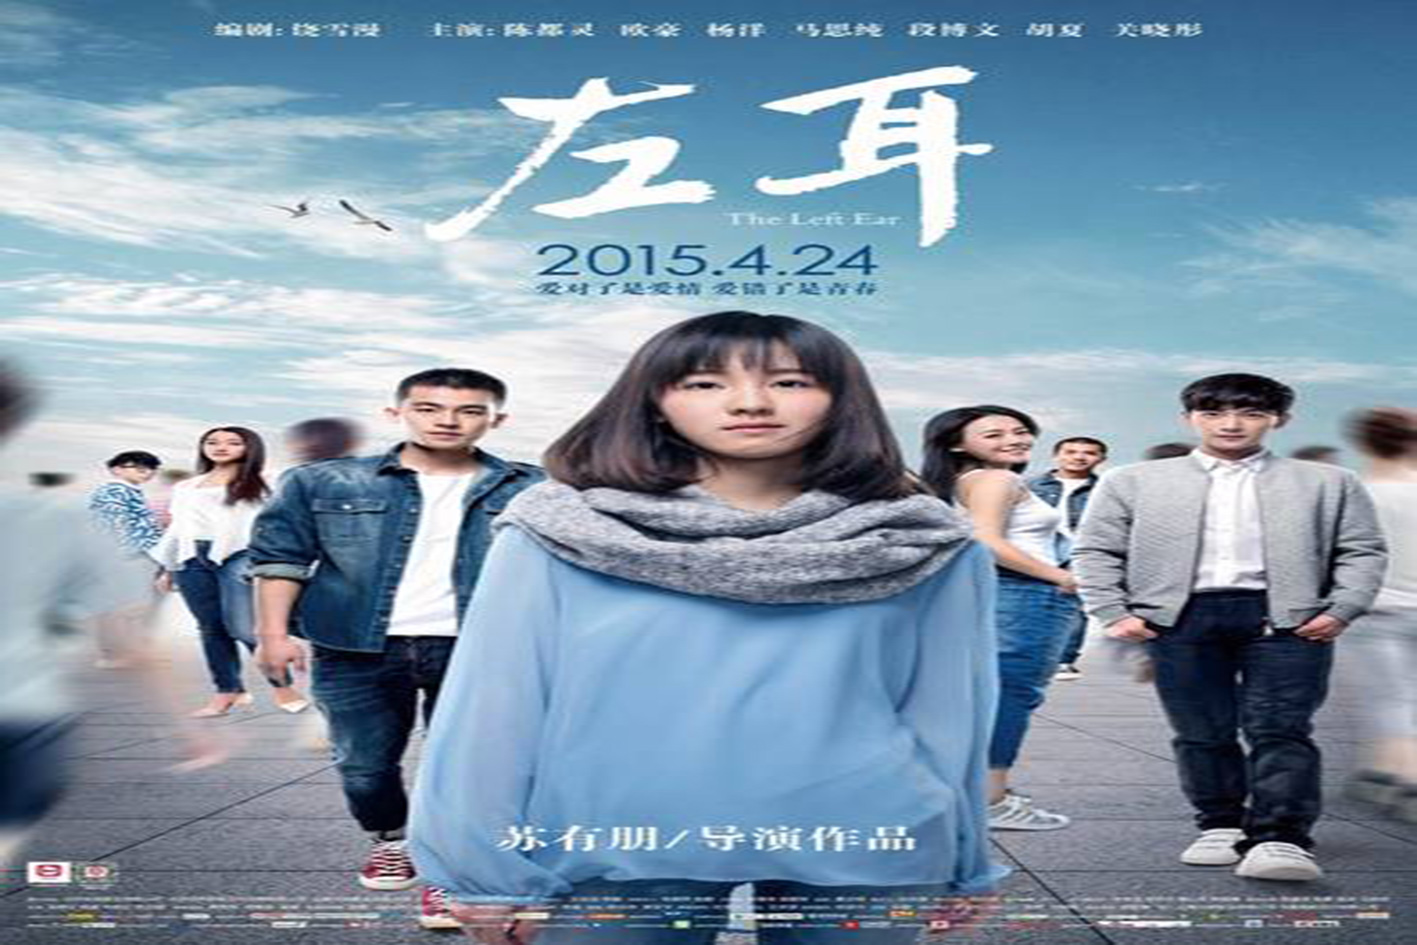 The Left Ear [2015 China Movie]